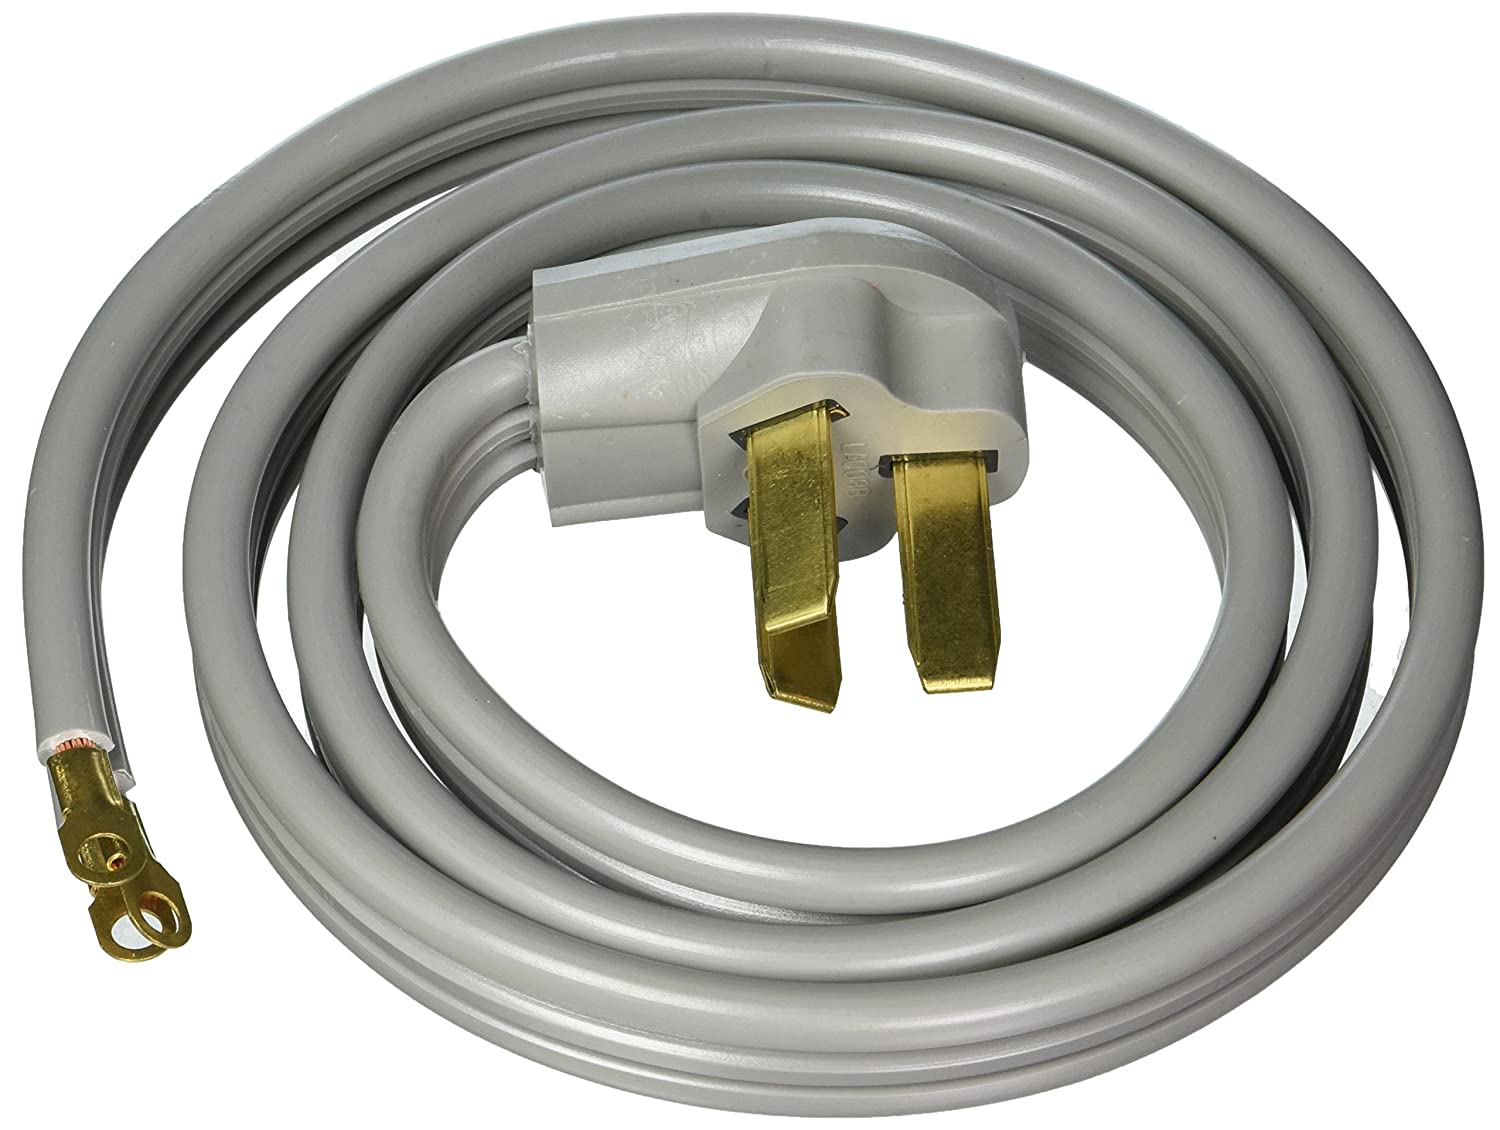 Certified Appliance Accessories 3 Wire Closed Eyelet 50 Wiring A Amp Outlet For Stove Range Cord 5ft Petra Home Improvement